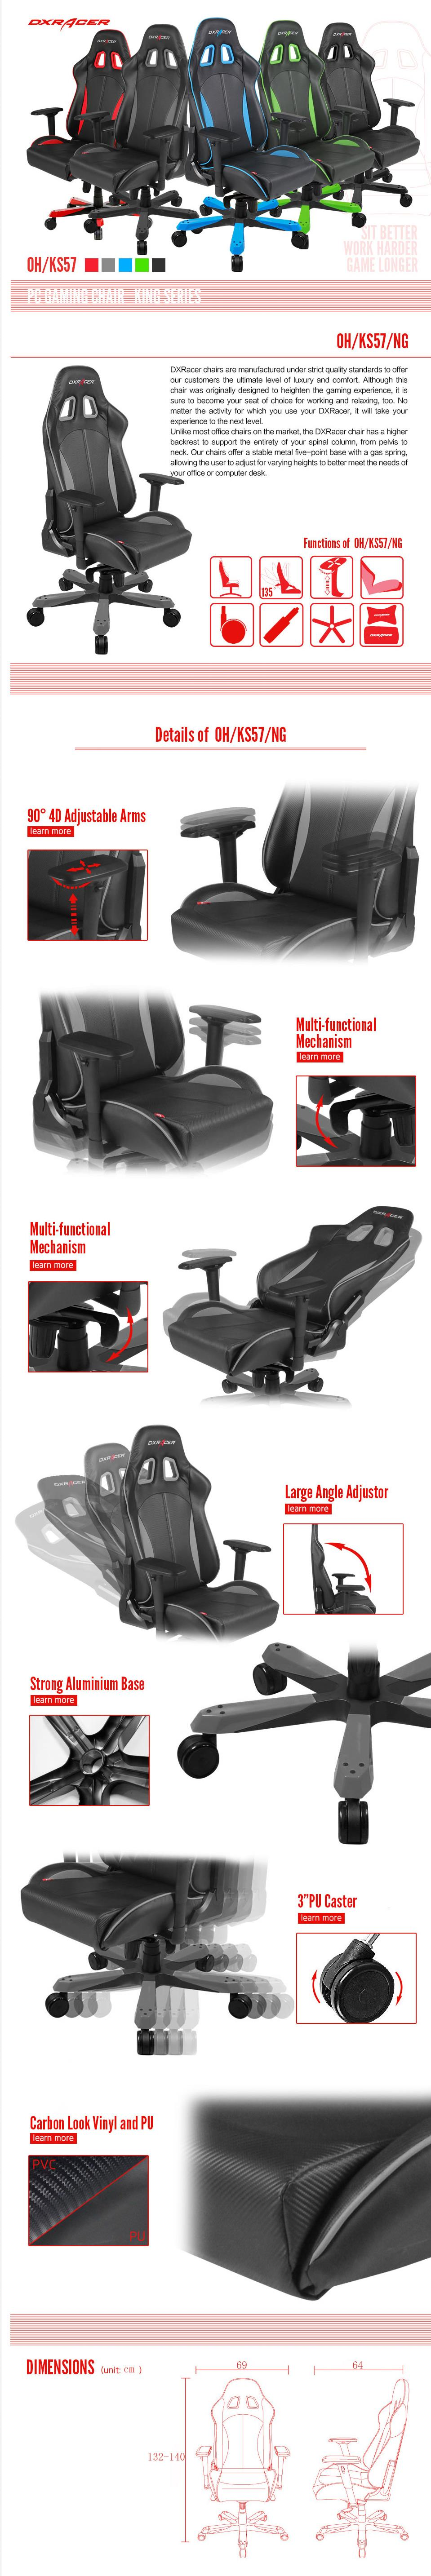 A large marketing image providing additional information about the product DXRacer KS57 Series PC Gaming Chair - Black & Carbon Grey w/ Lumbar Support - Additional alt info not provided